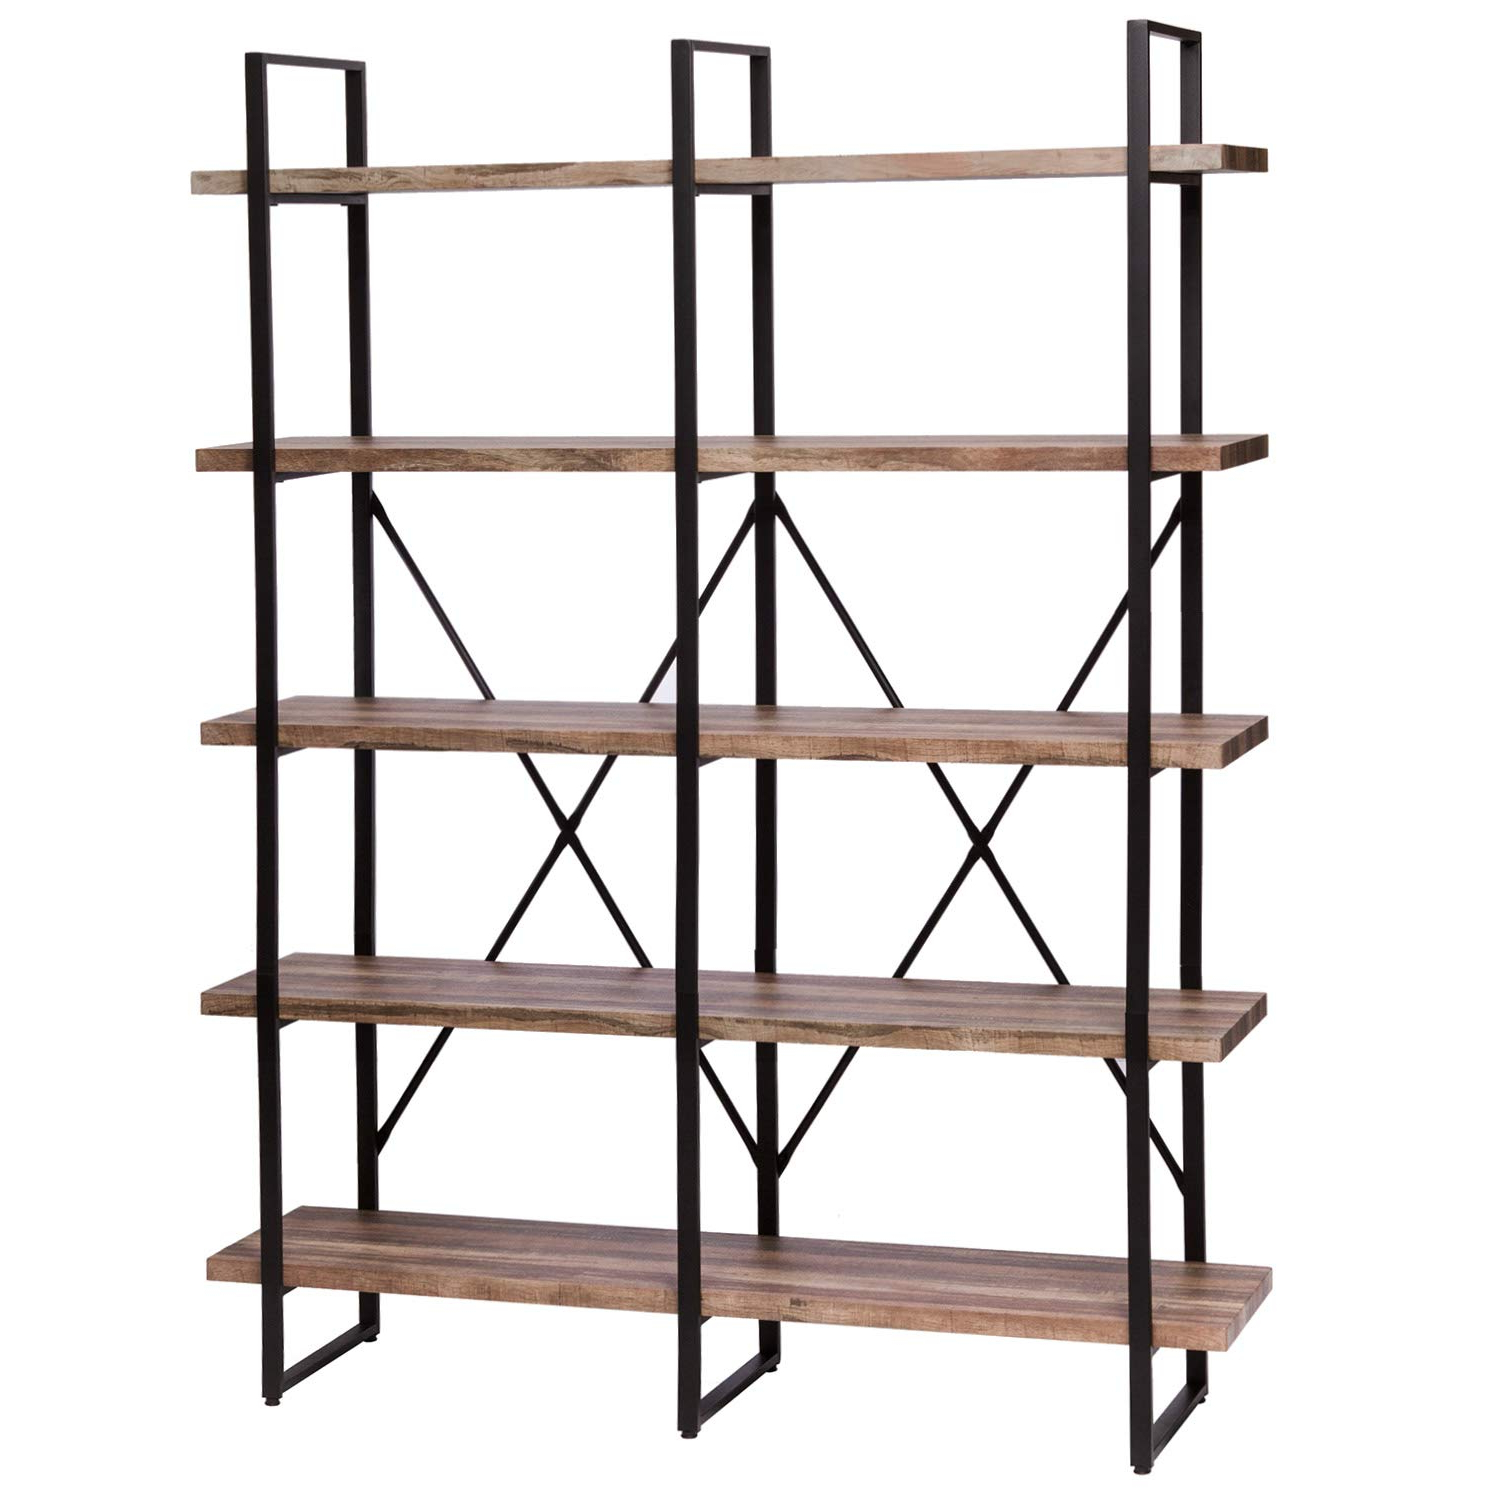 Famous Rech 4 Tier Etagere Bookcases Throughout Ironck Bookshelf, Double Wide 5 Tier Open Bookcase Vintage Industrial Large  Shelves, Wood And Metal Etagere Bookshelves, For Home Decor Display, (View 4 of 20)